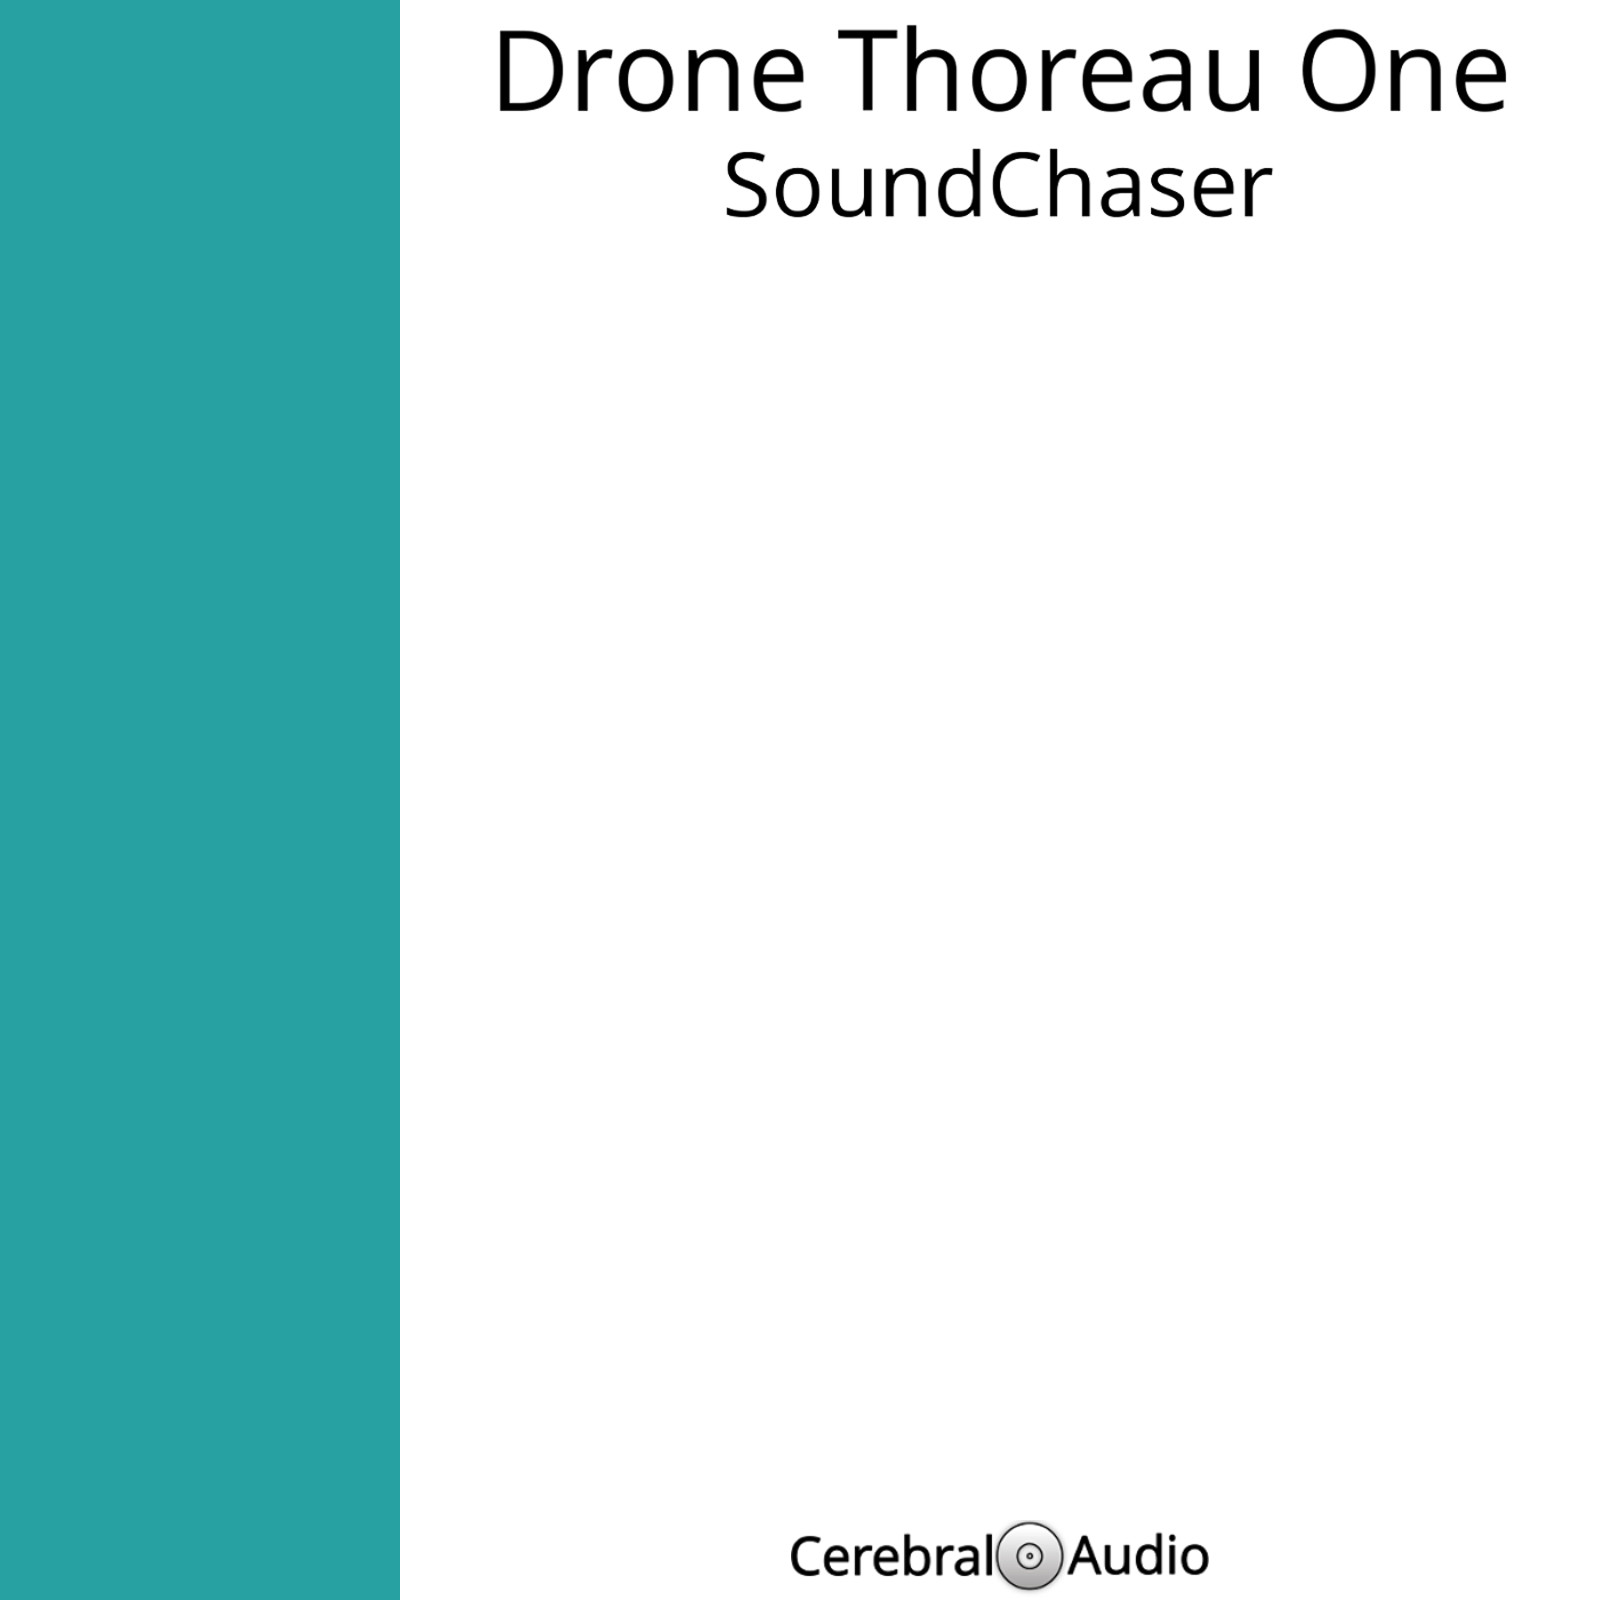 Drone Thoreau One